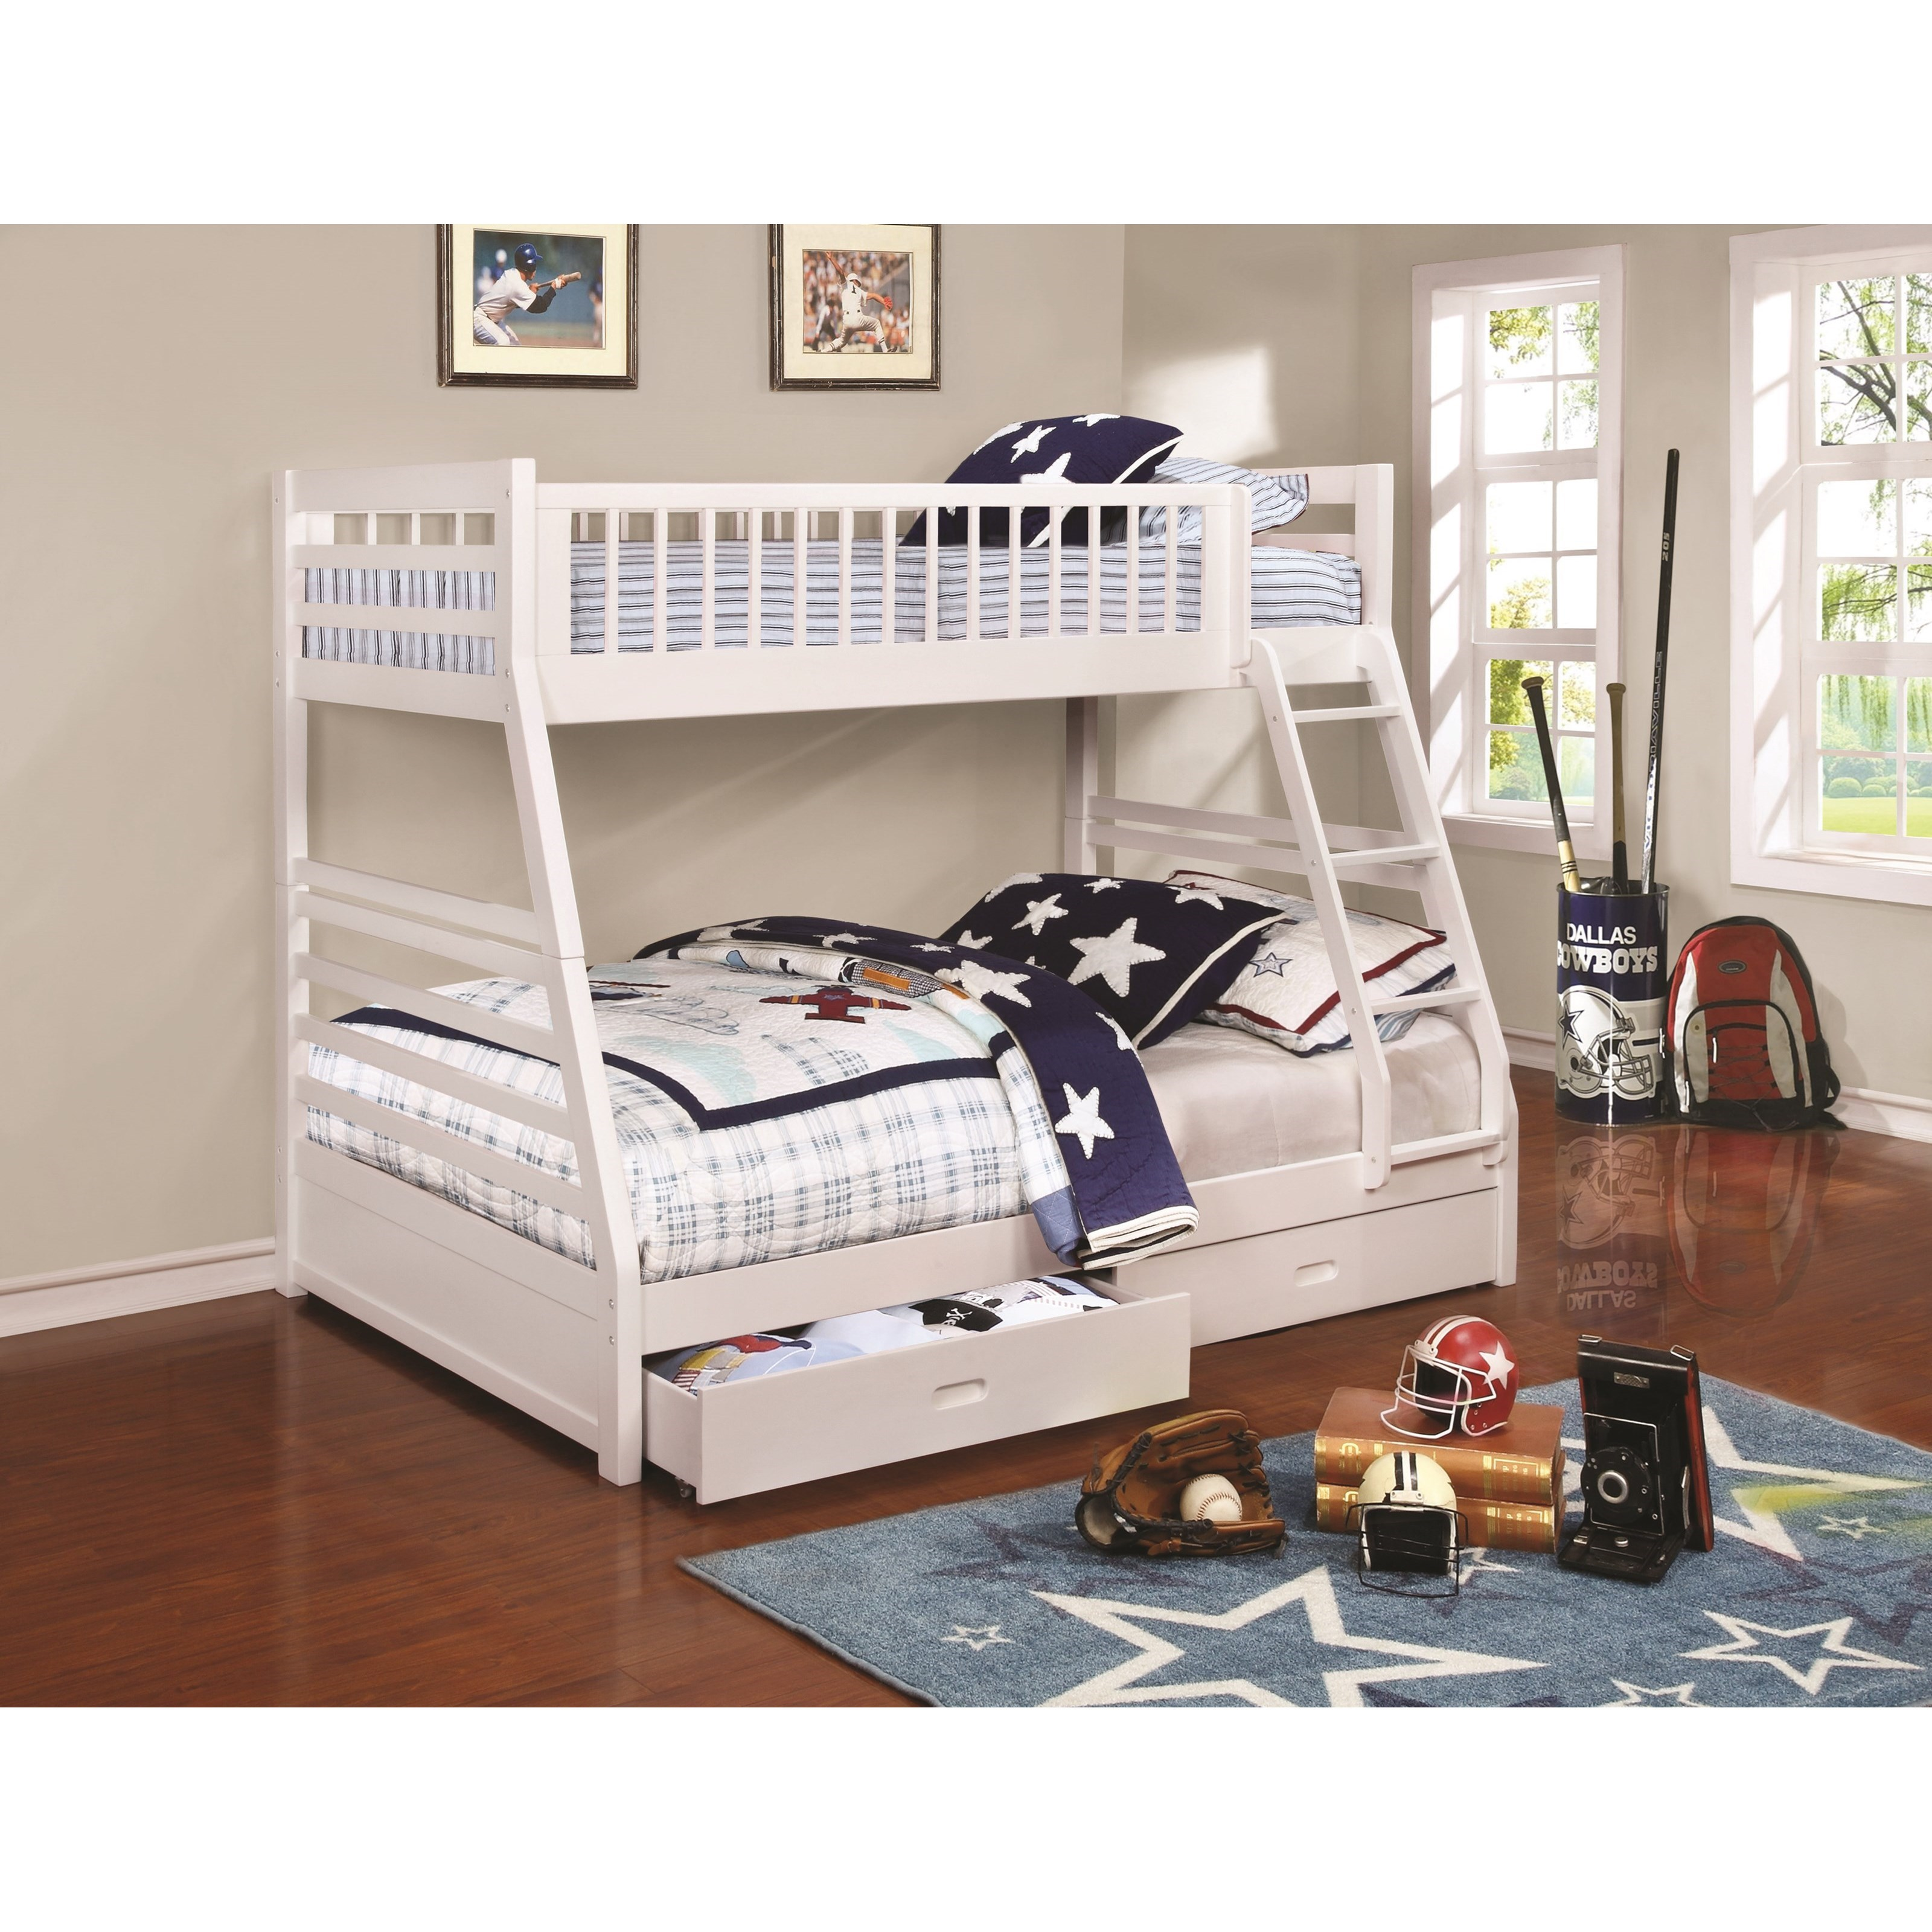 Coaster bunks 460180 twin over full bunk bed with 2 drawers and attached ladder furniture - Beds with desks attached ...